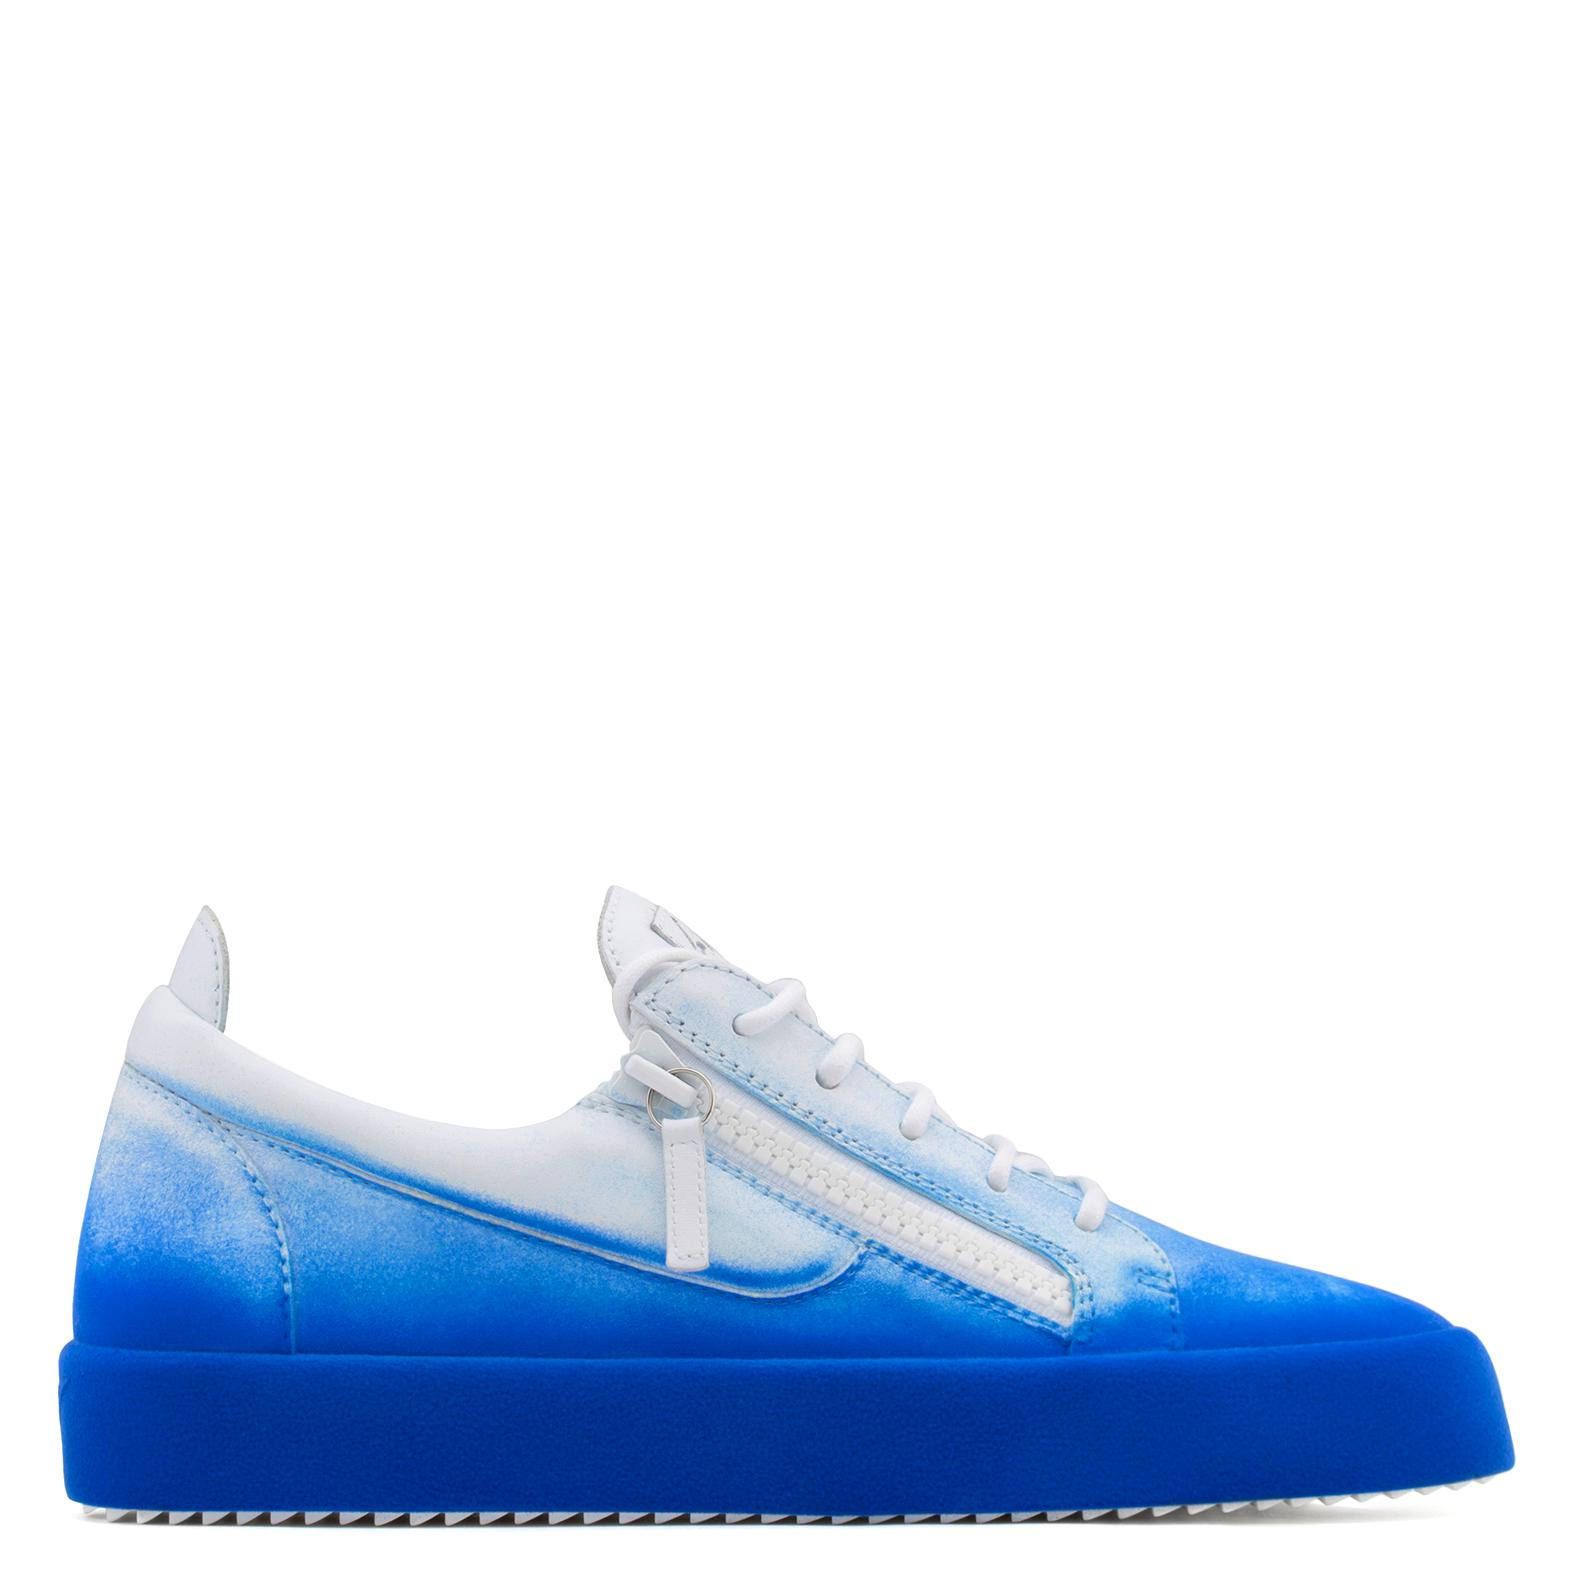 Giuseppe ZanottiWhite calfskin leather low-top sneaker with blue flocking patina NEW UNFINISHED AK6Akmr